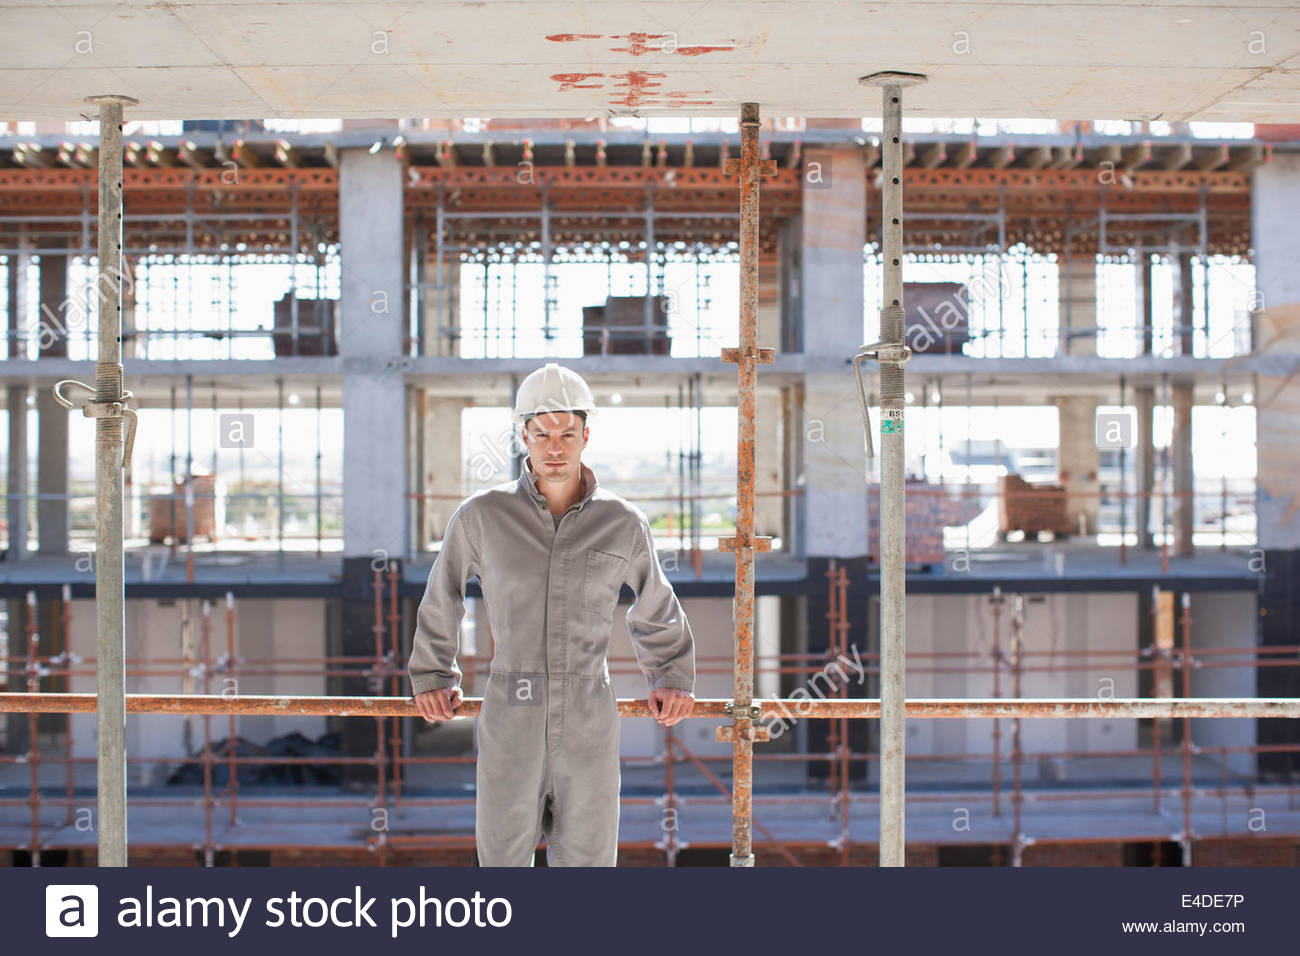 Construction worker on construction site - Stock Image